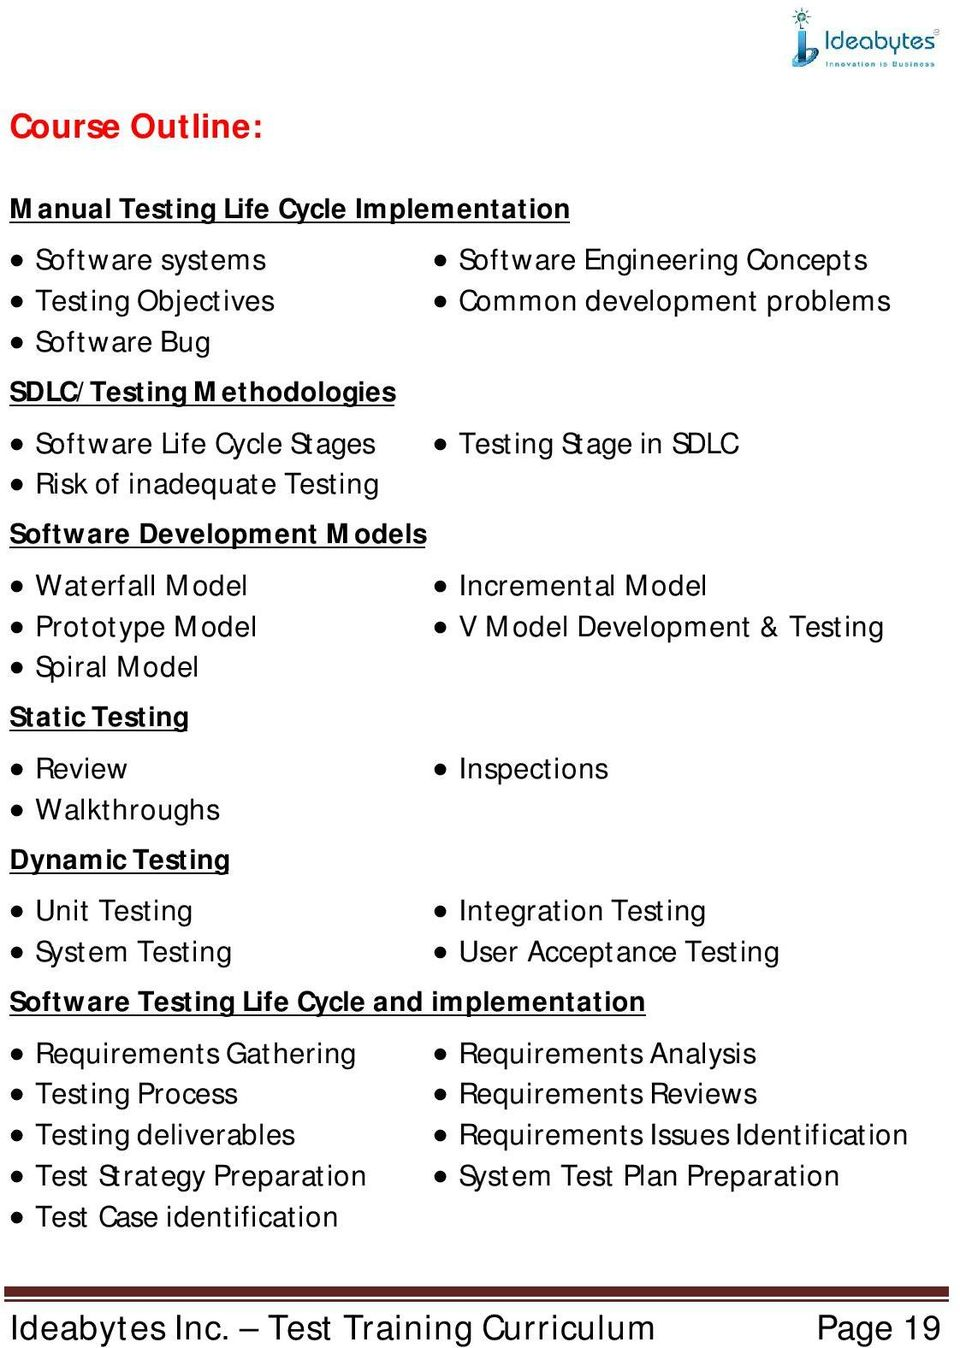 Testing Review Inspections Walkthroughs Dynamic Testing Unit Testing Integration Testing System Testing User Acceptance Testing Software Testing Life Cycle and implementation Requirements Gathering